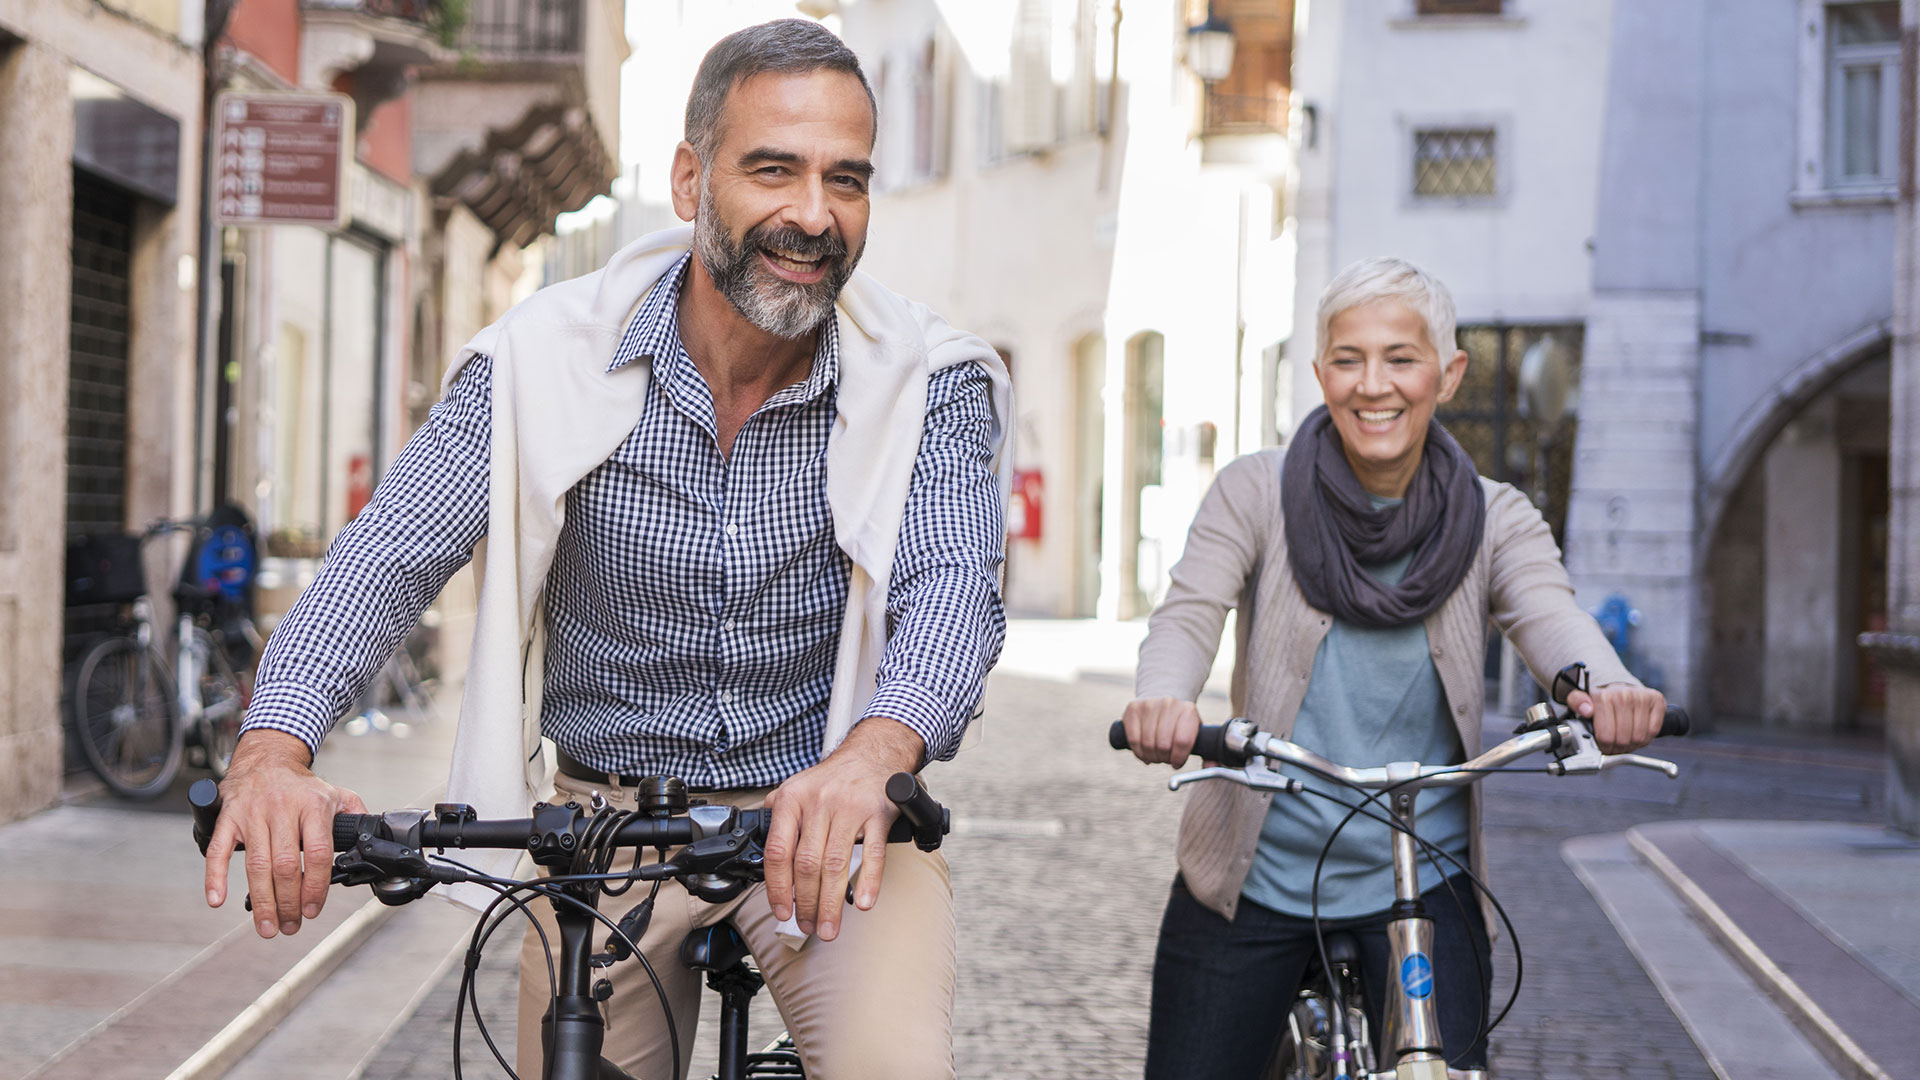 Travel discounts just for seniors!